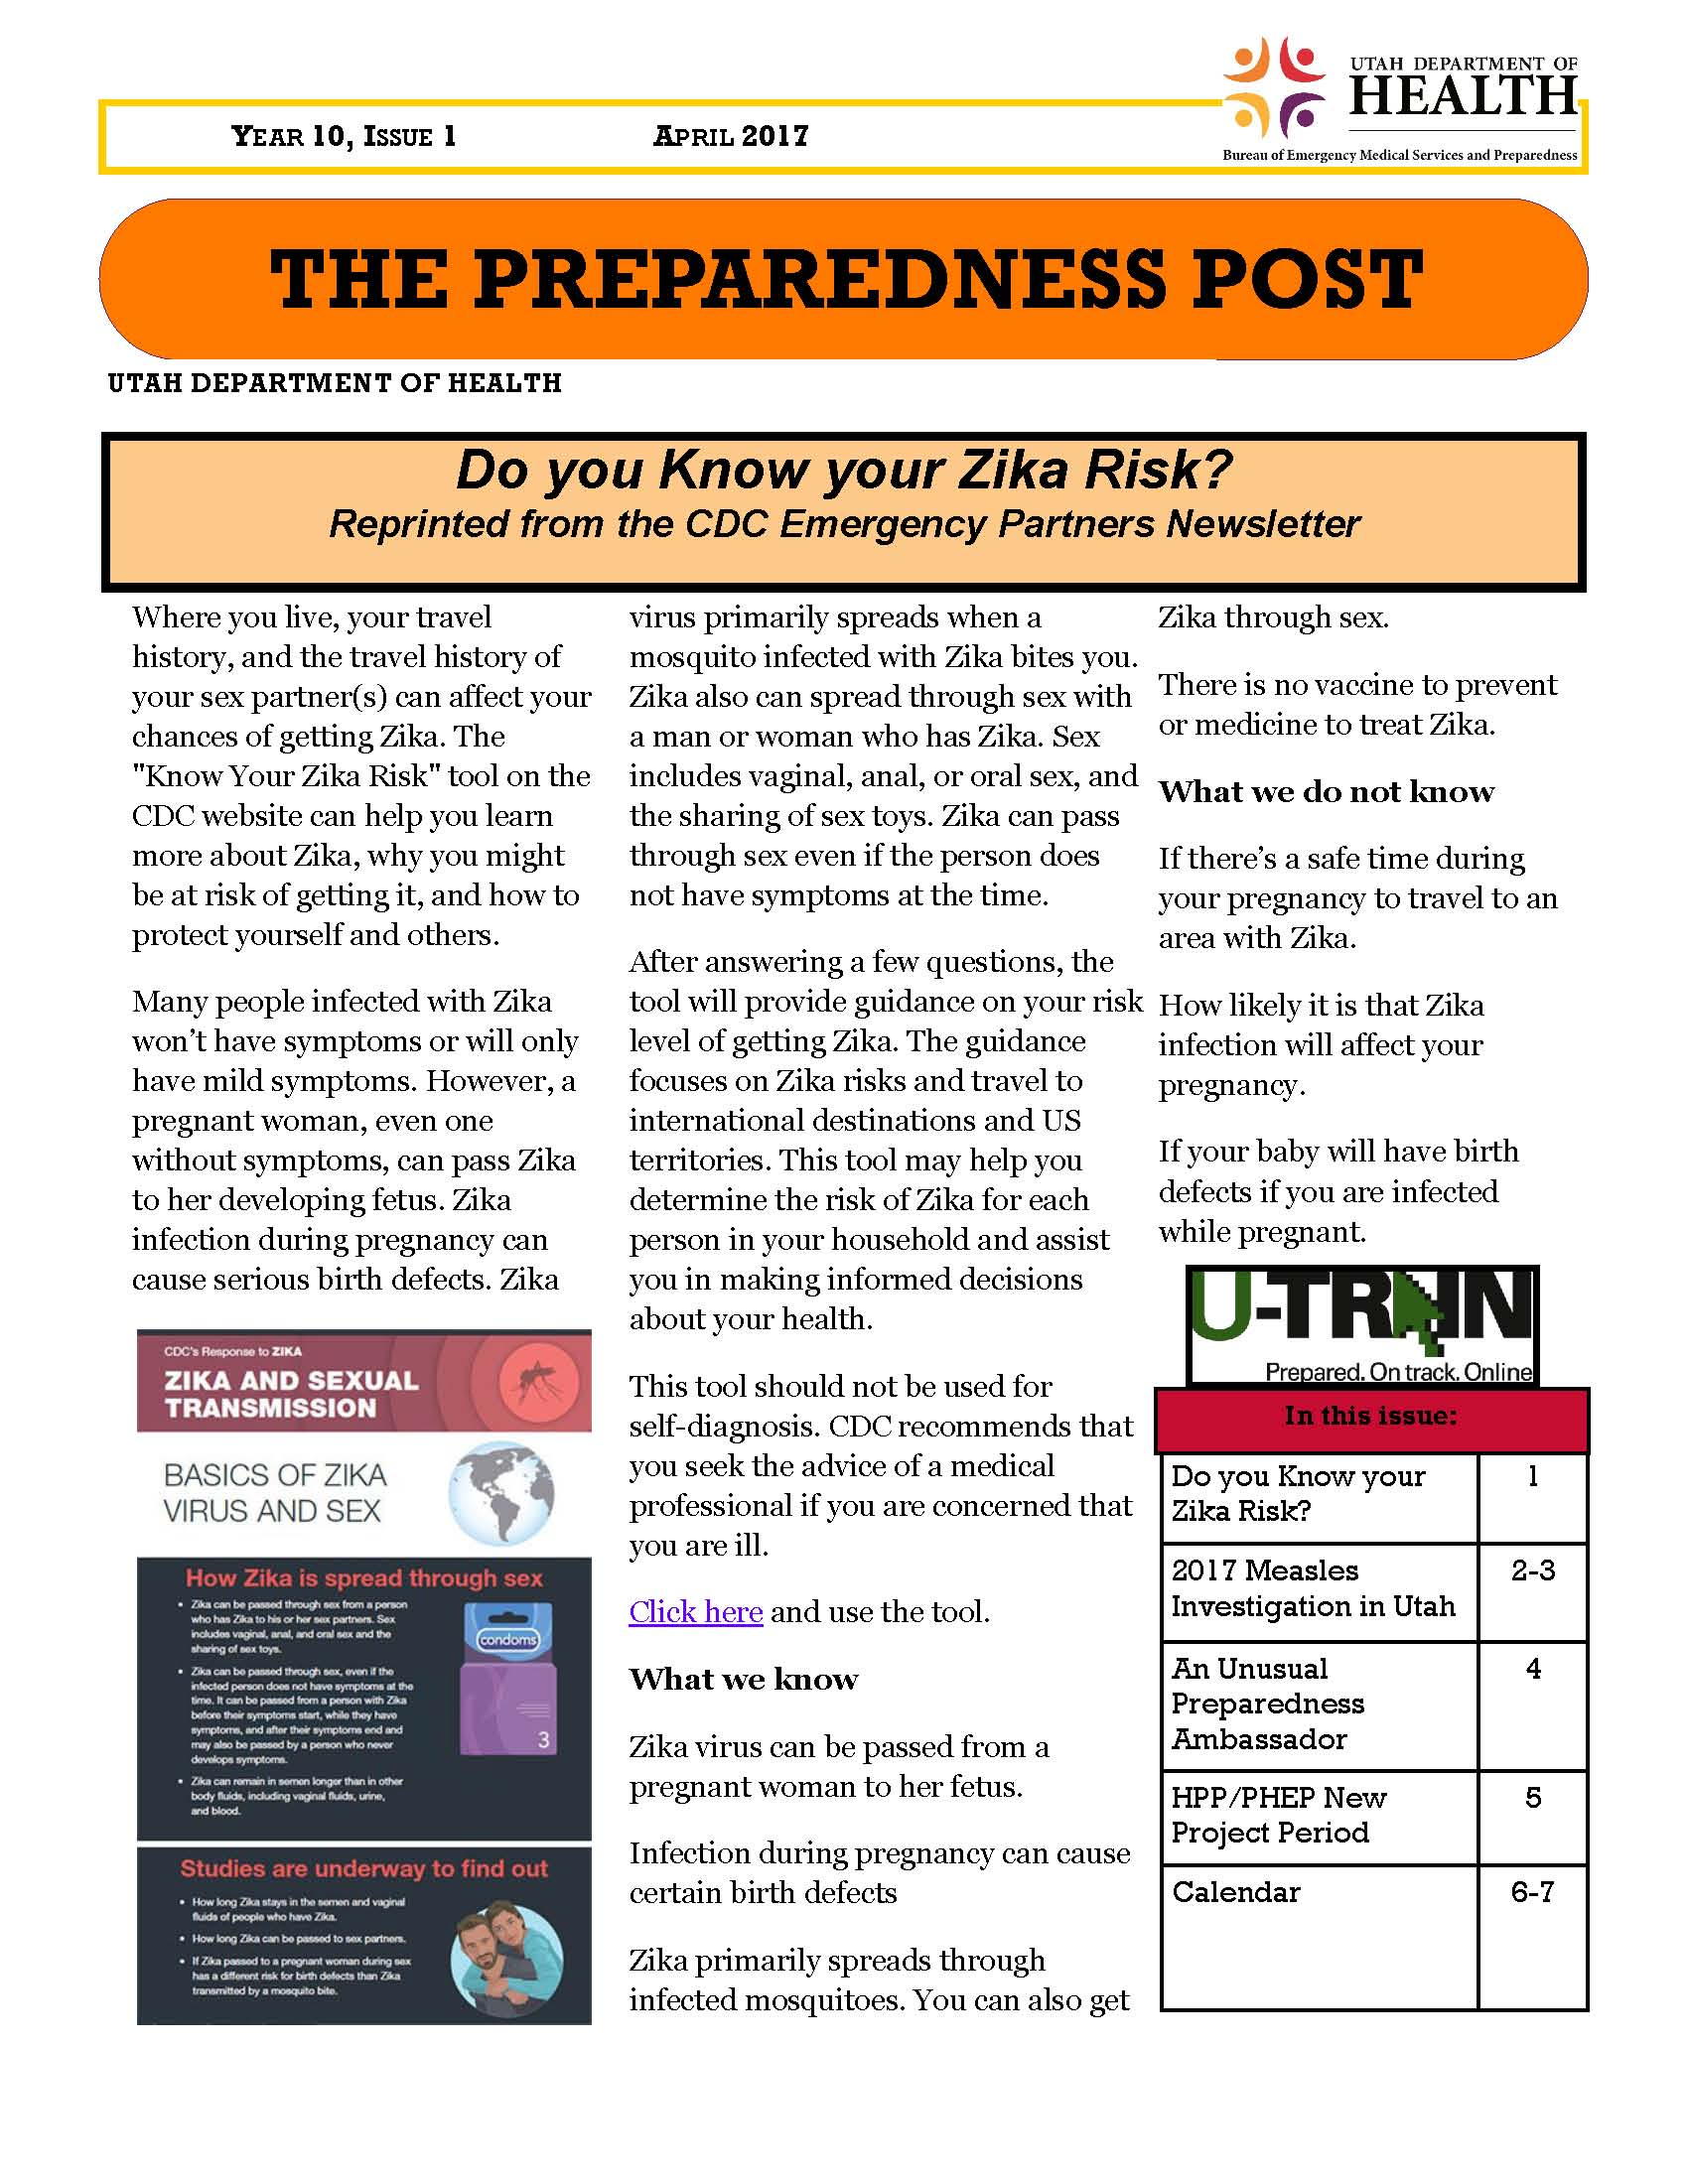 Bureau of emergency medical services and preparedness utah the preparedness post year 10 issue 1 1betcityfo Gallery